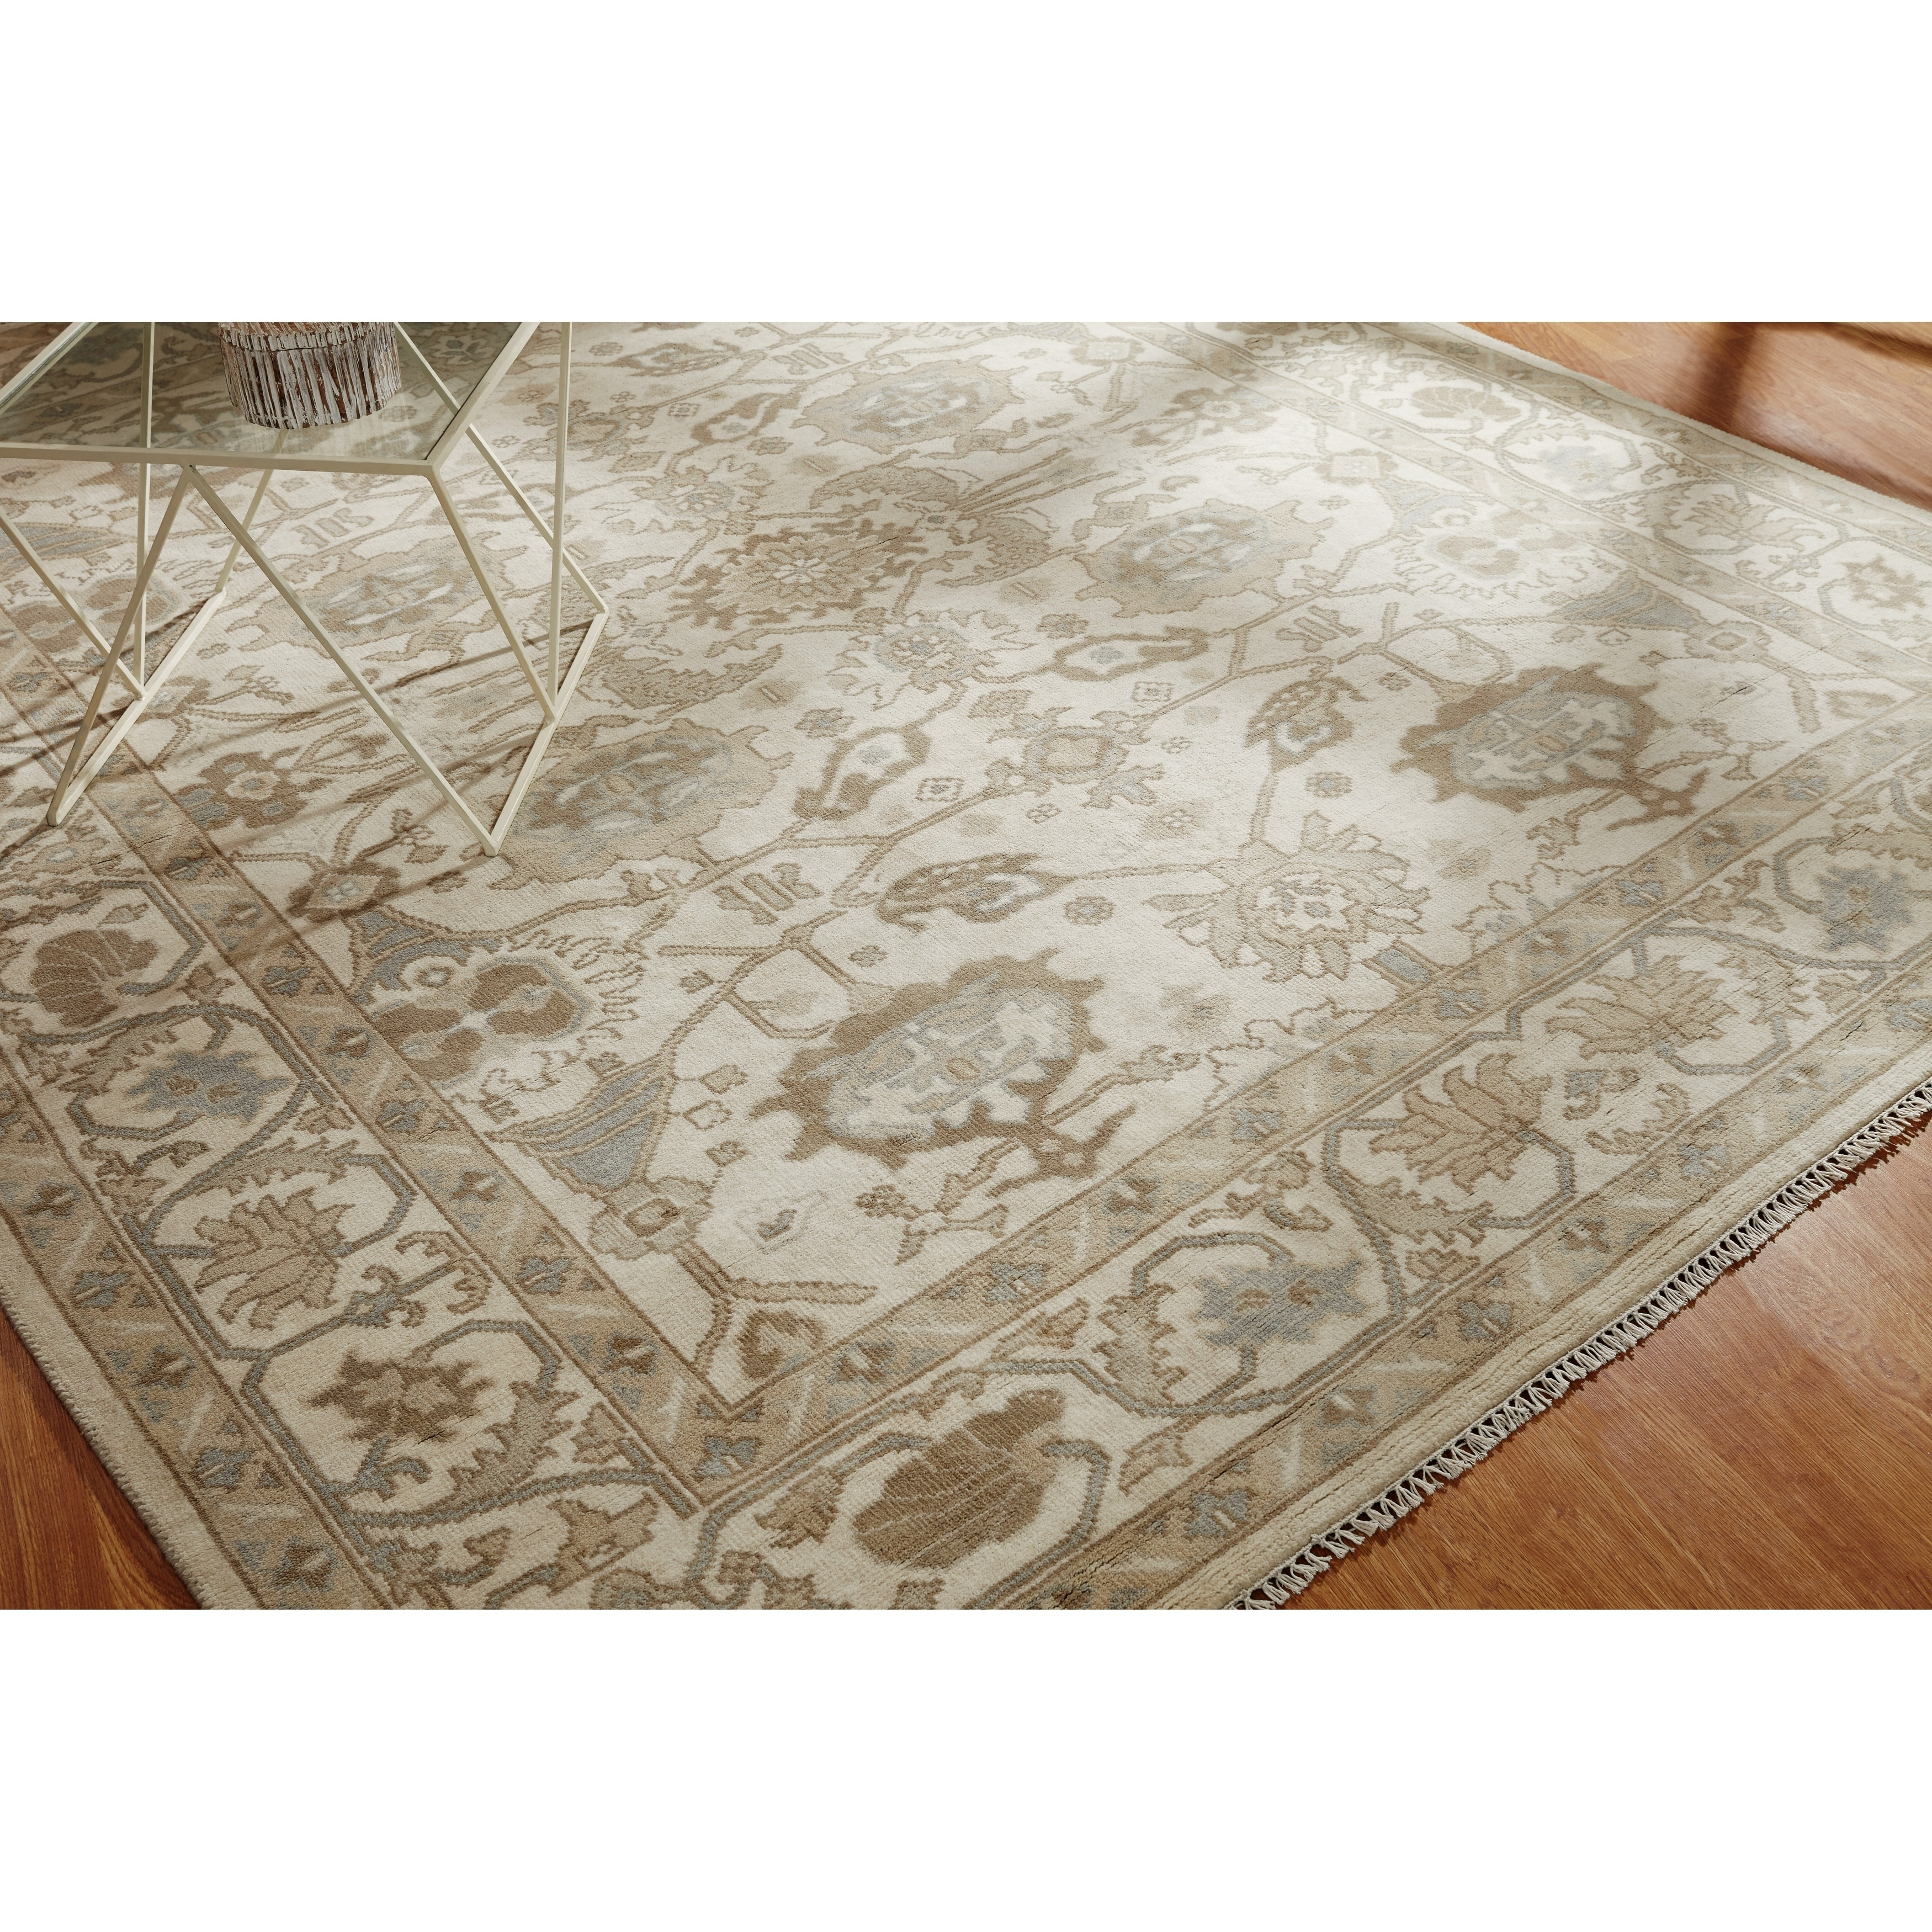 Umbria Beige Wool Hand Knotted Rug Overstock 17213212